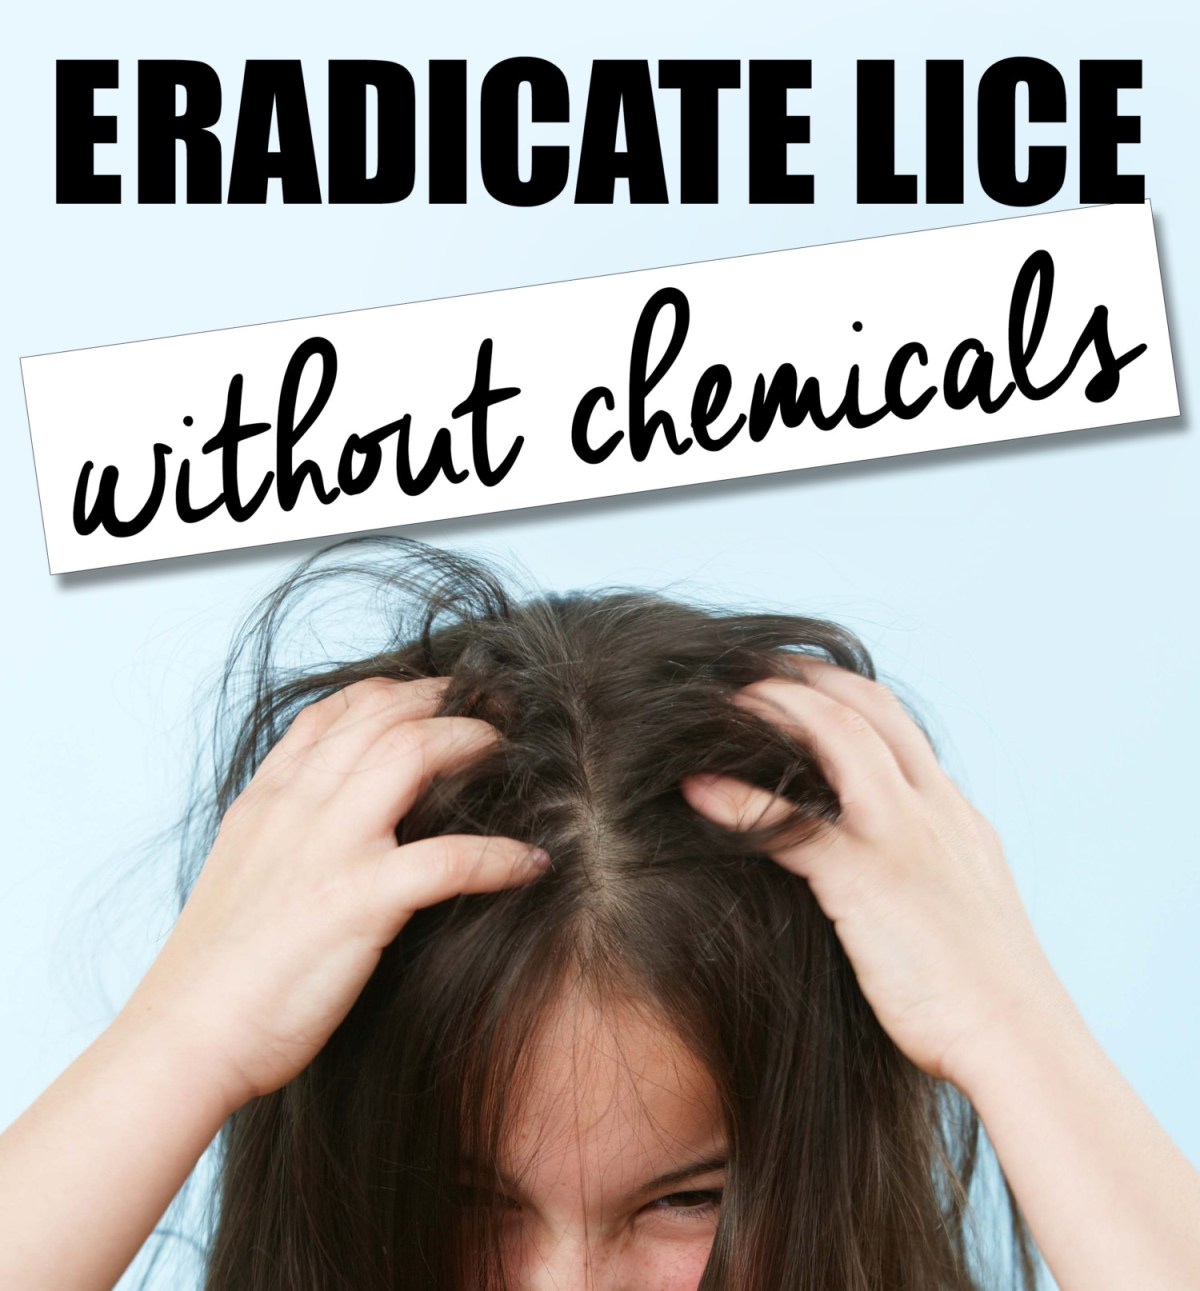 Eradicate Lice Without Chemicals